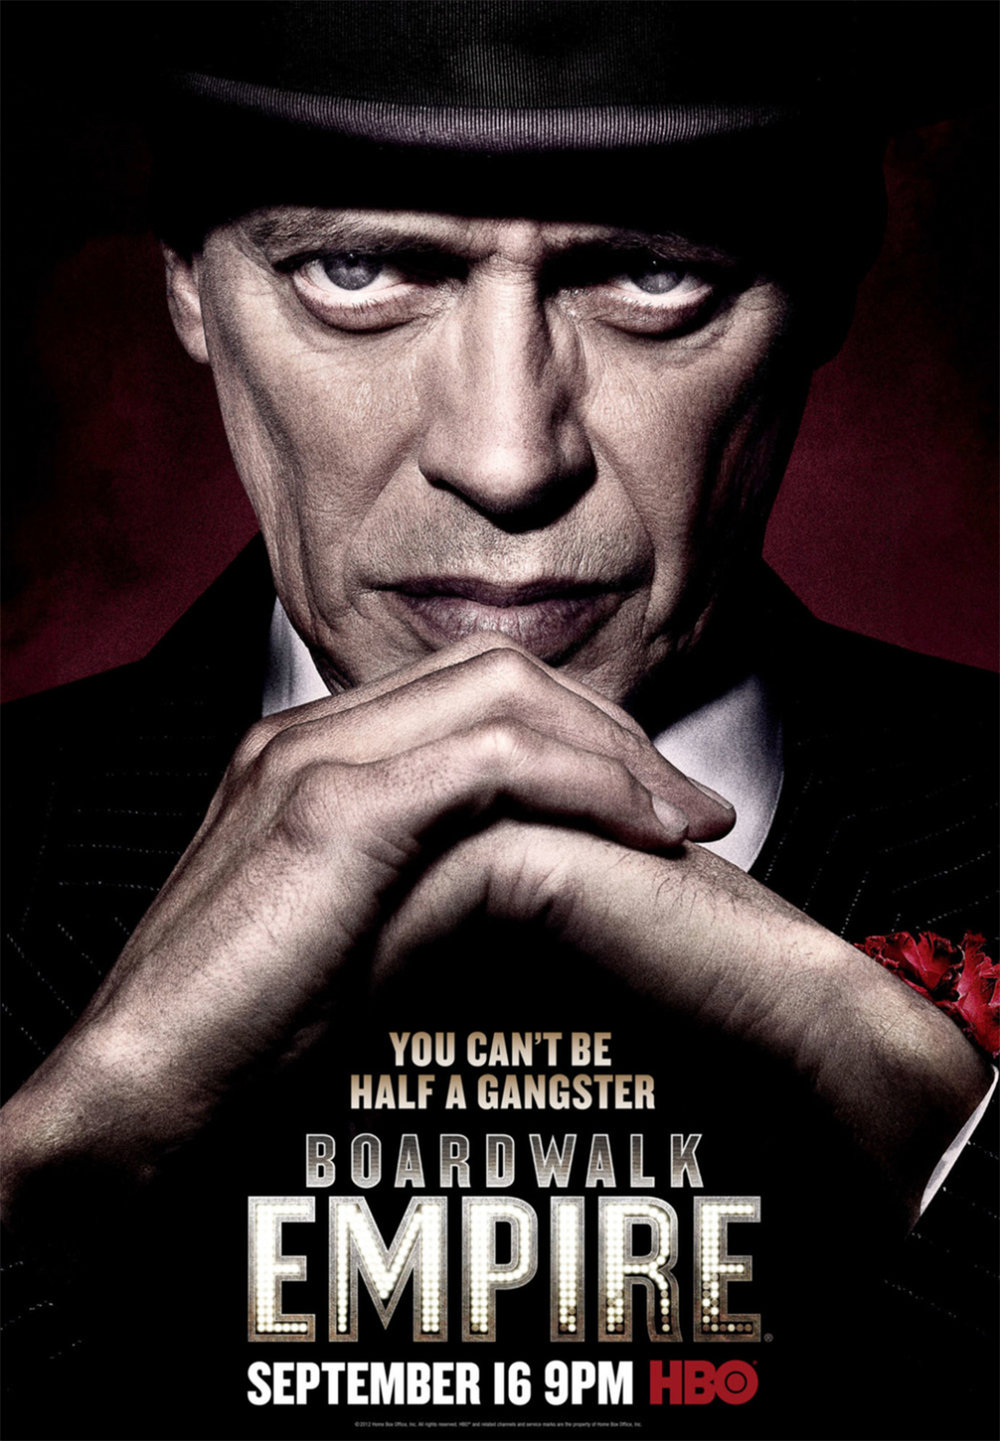 HBO - Steve Buscemi in Boardwalk Empire - Brooklyn, NY